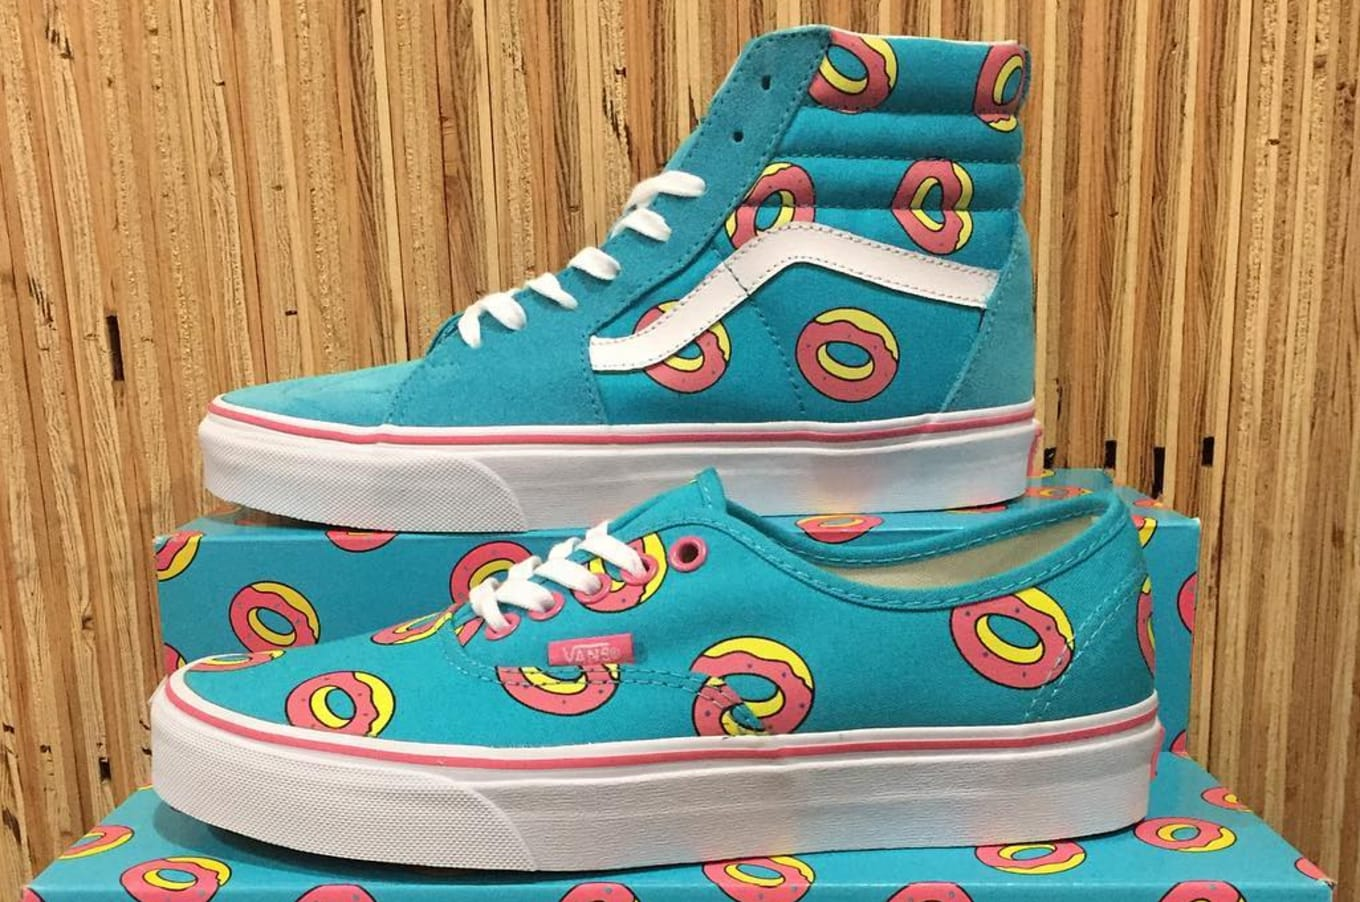 38d40549f005bf A pair of donut sneakers from Tyler